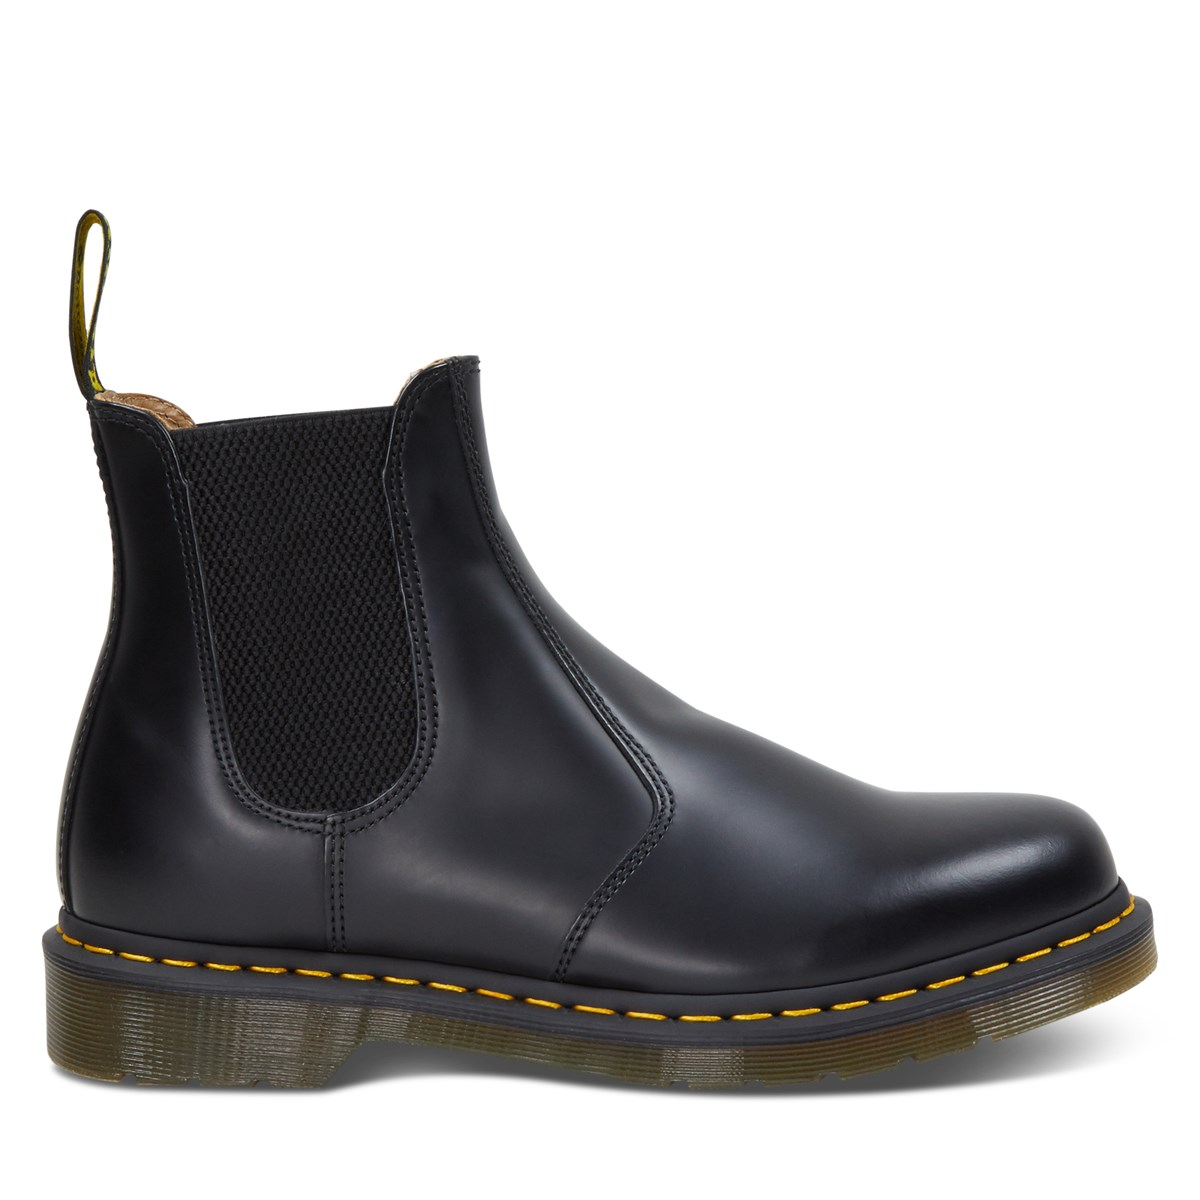 Men's 2976 Smooth Chelsea Boots in Black